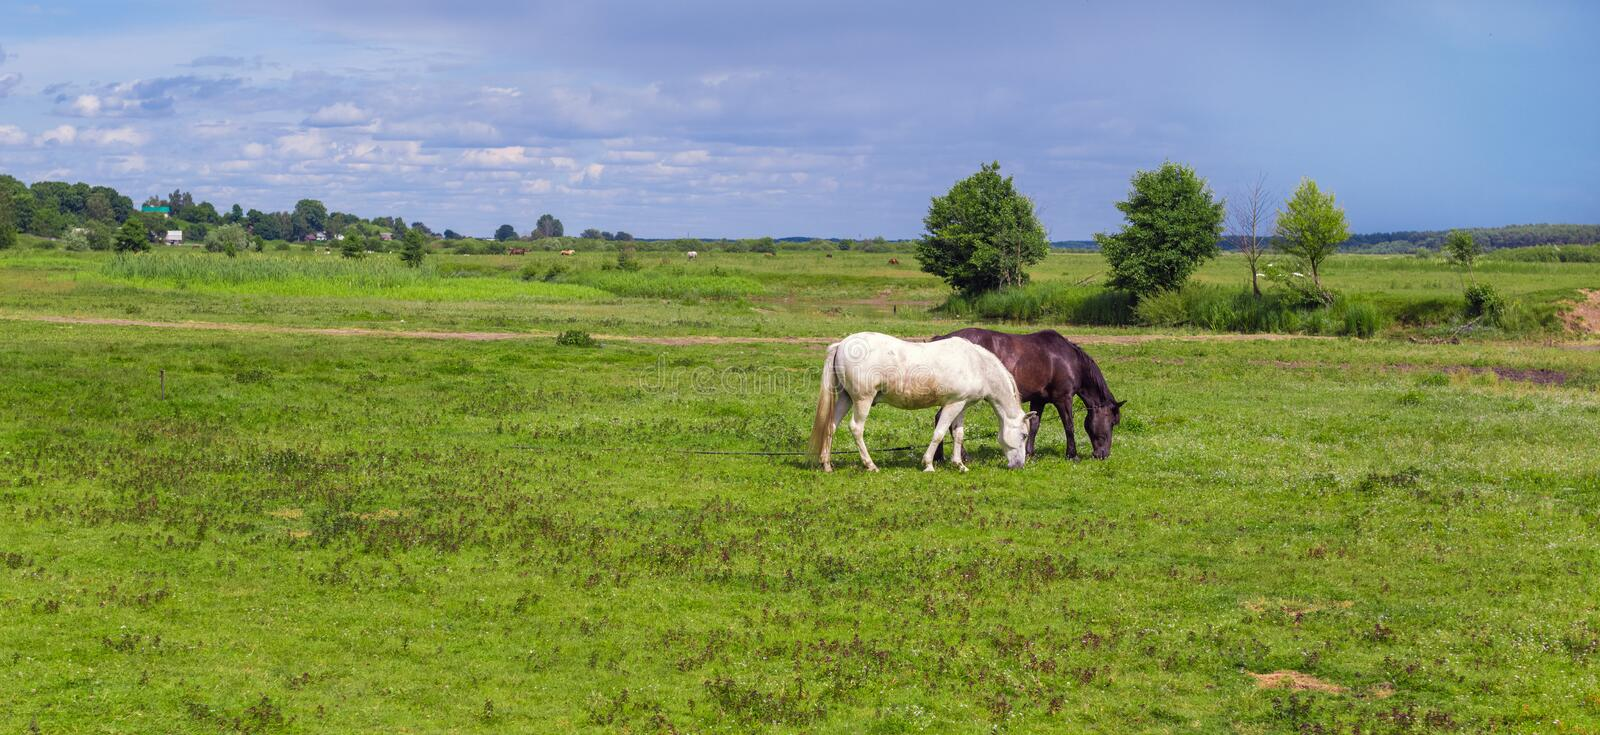 The two tied horses in the pasture royalty free stock photo